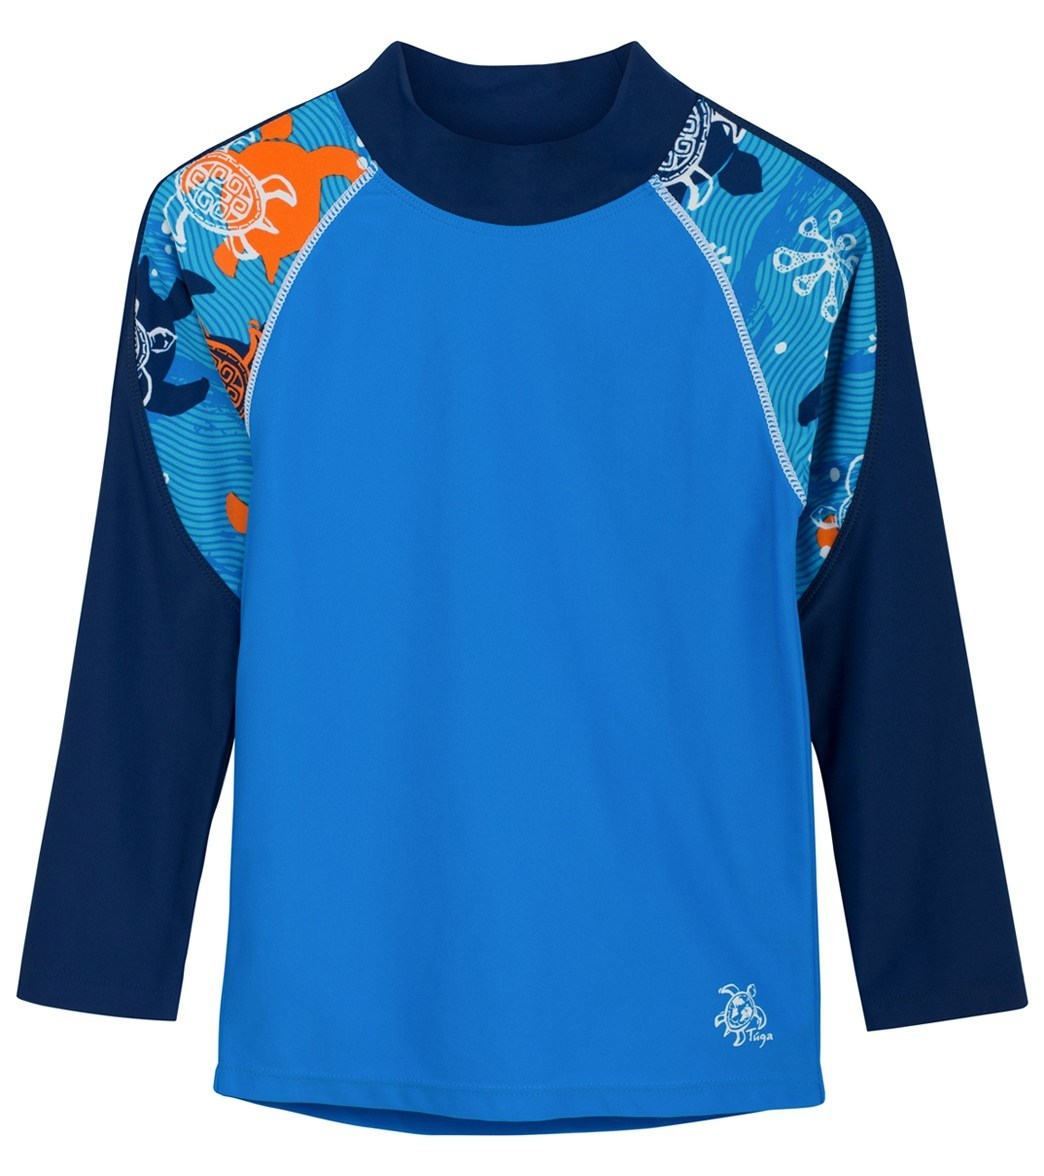 81cce78066 Tuga Boys  Offshore Long Sleeve Rash Guard (2 yrs-14 yrs) at SwimOutlet.com